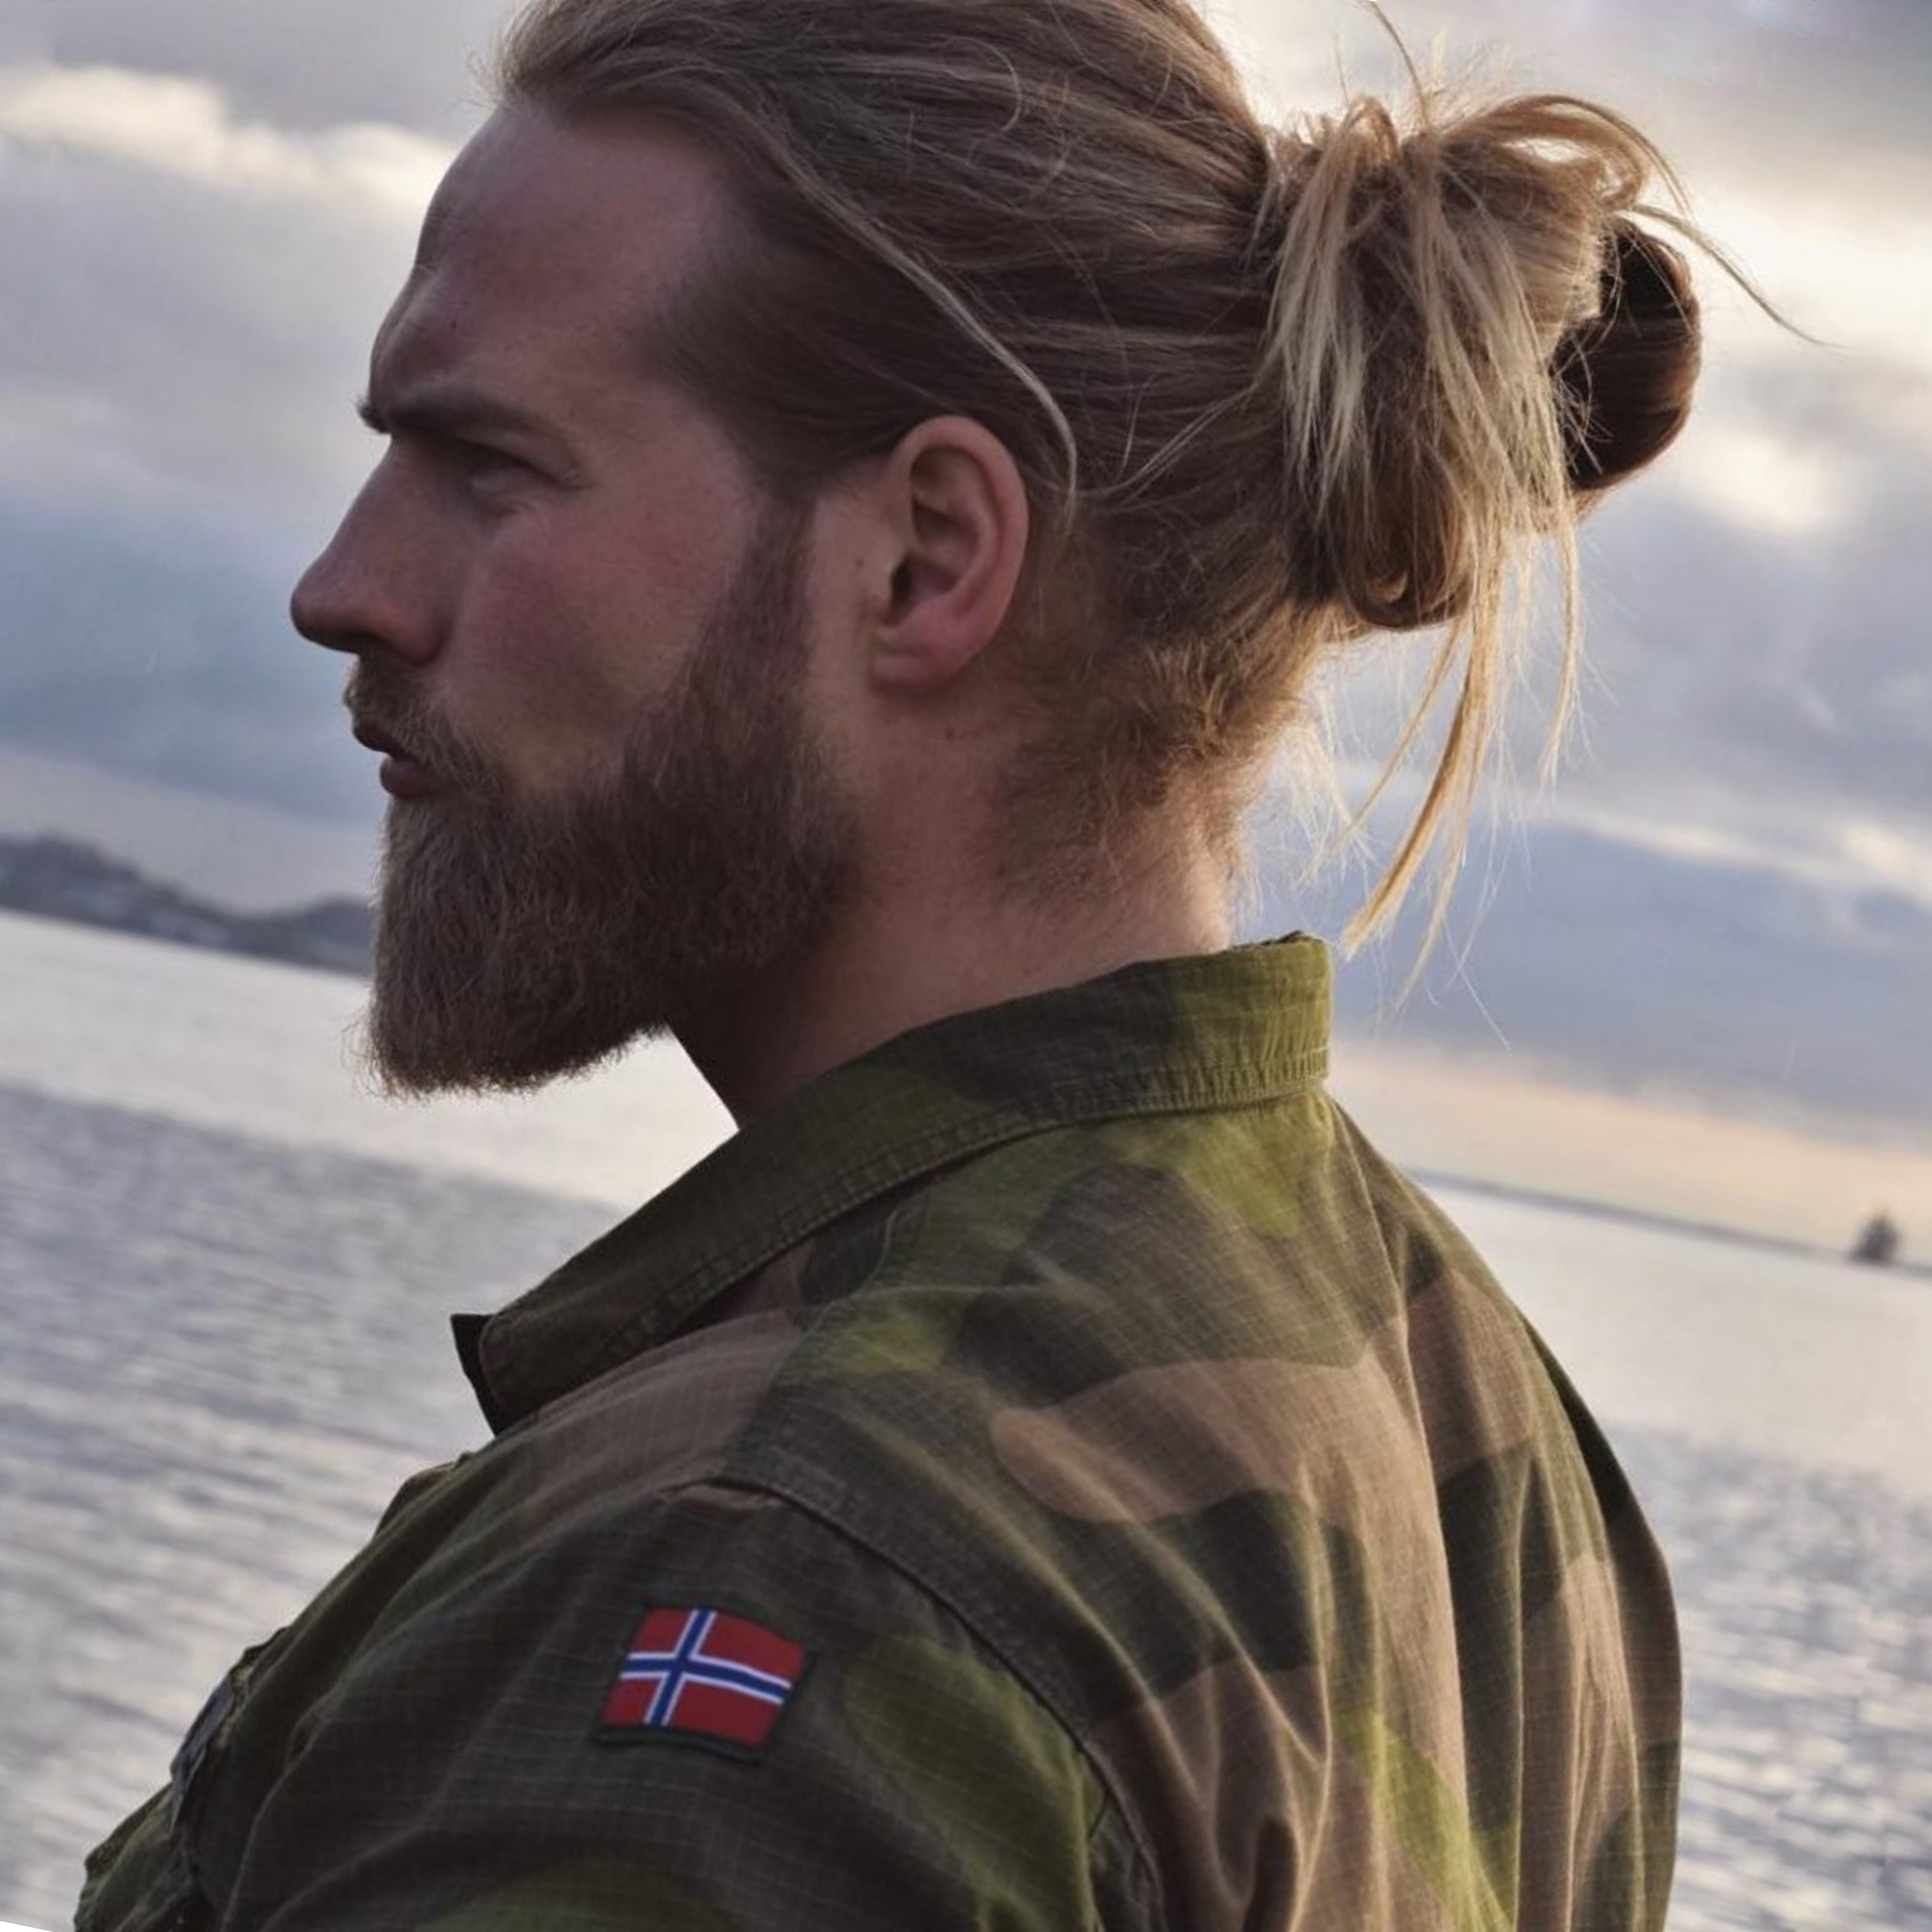 A natural-looking bun for males.